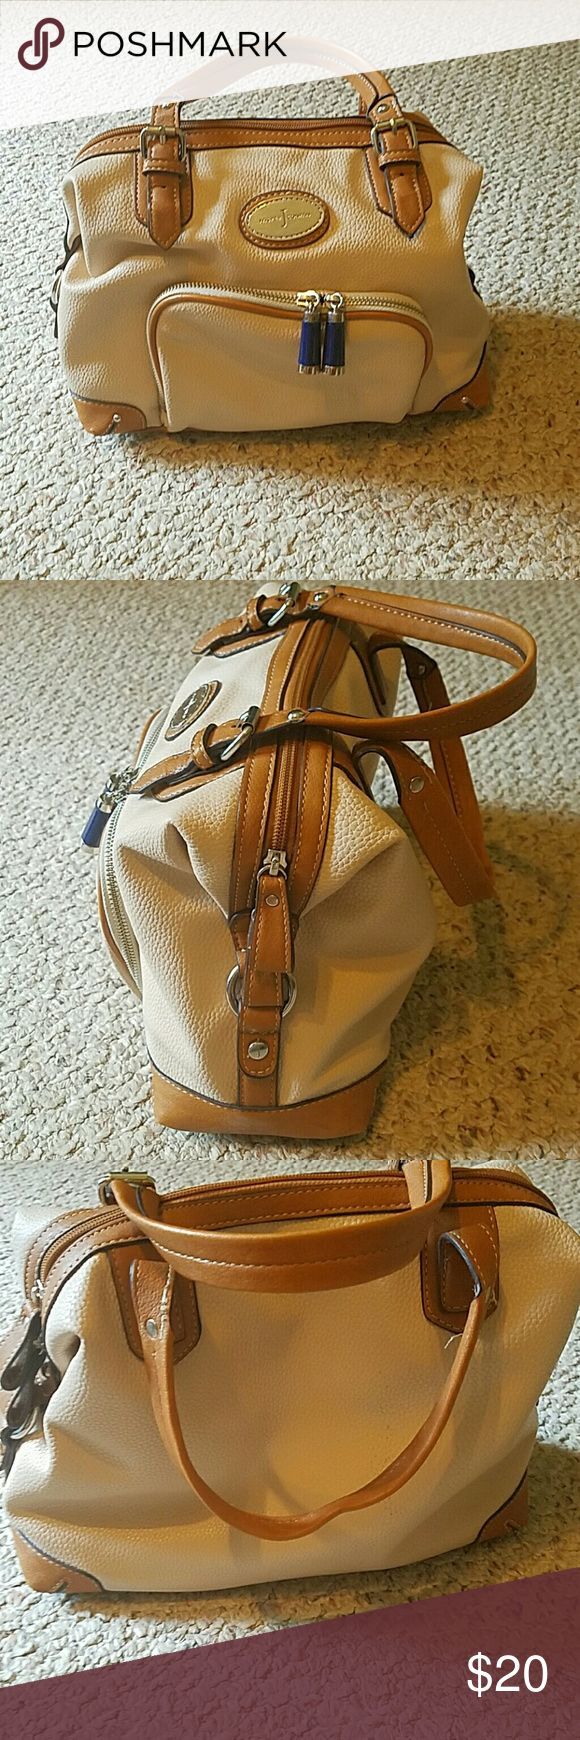 Small size Handbag Barely used, front zip pocket, inside zip pocket, leather Jasper Conran (for Debenham's) Bags Mini Bags